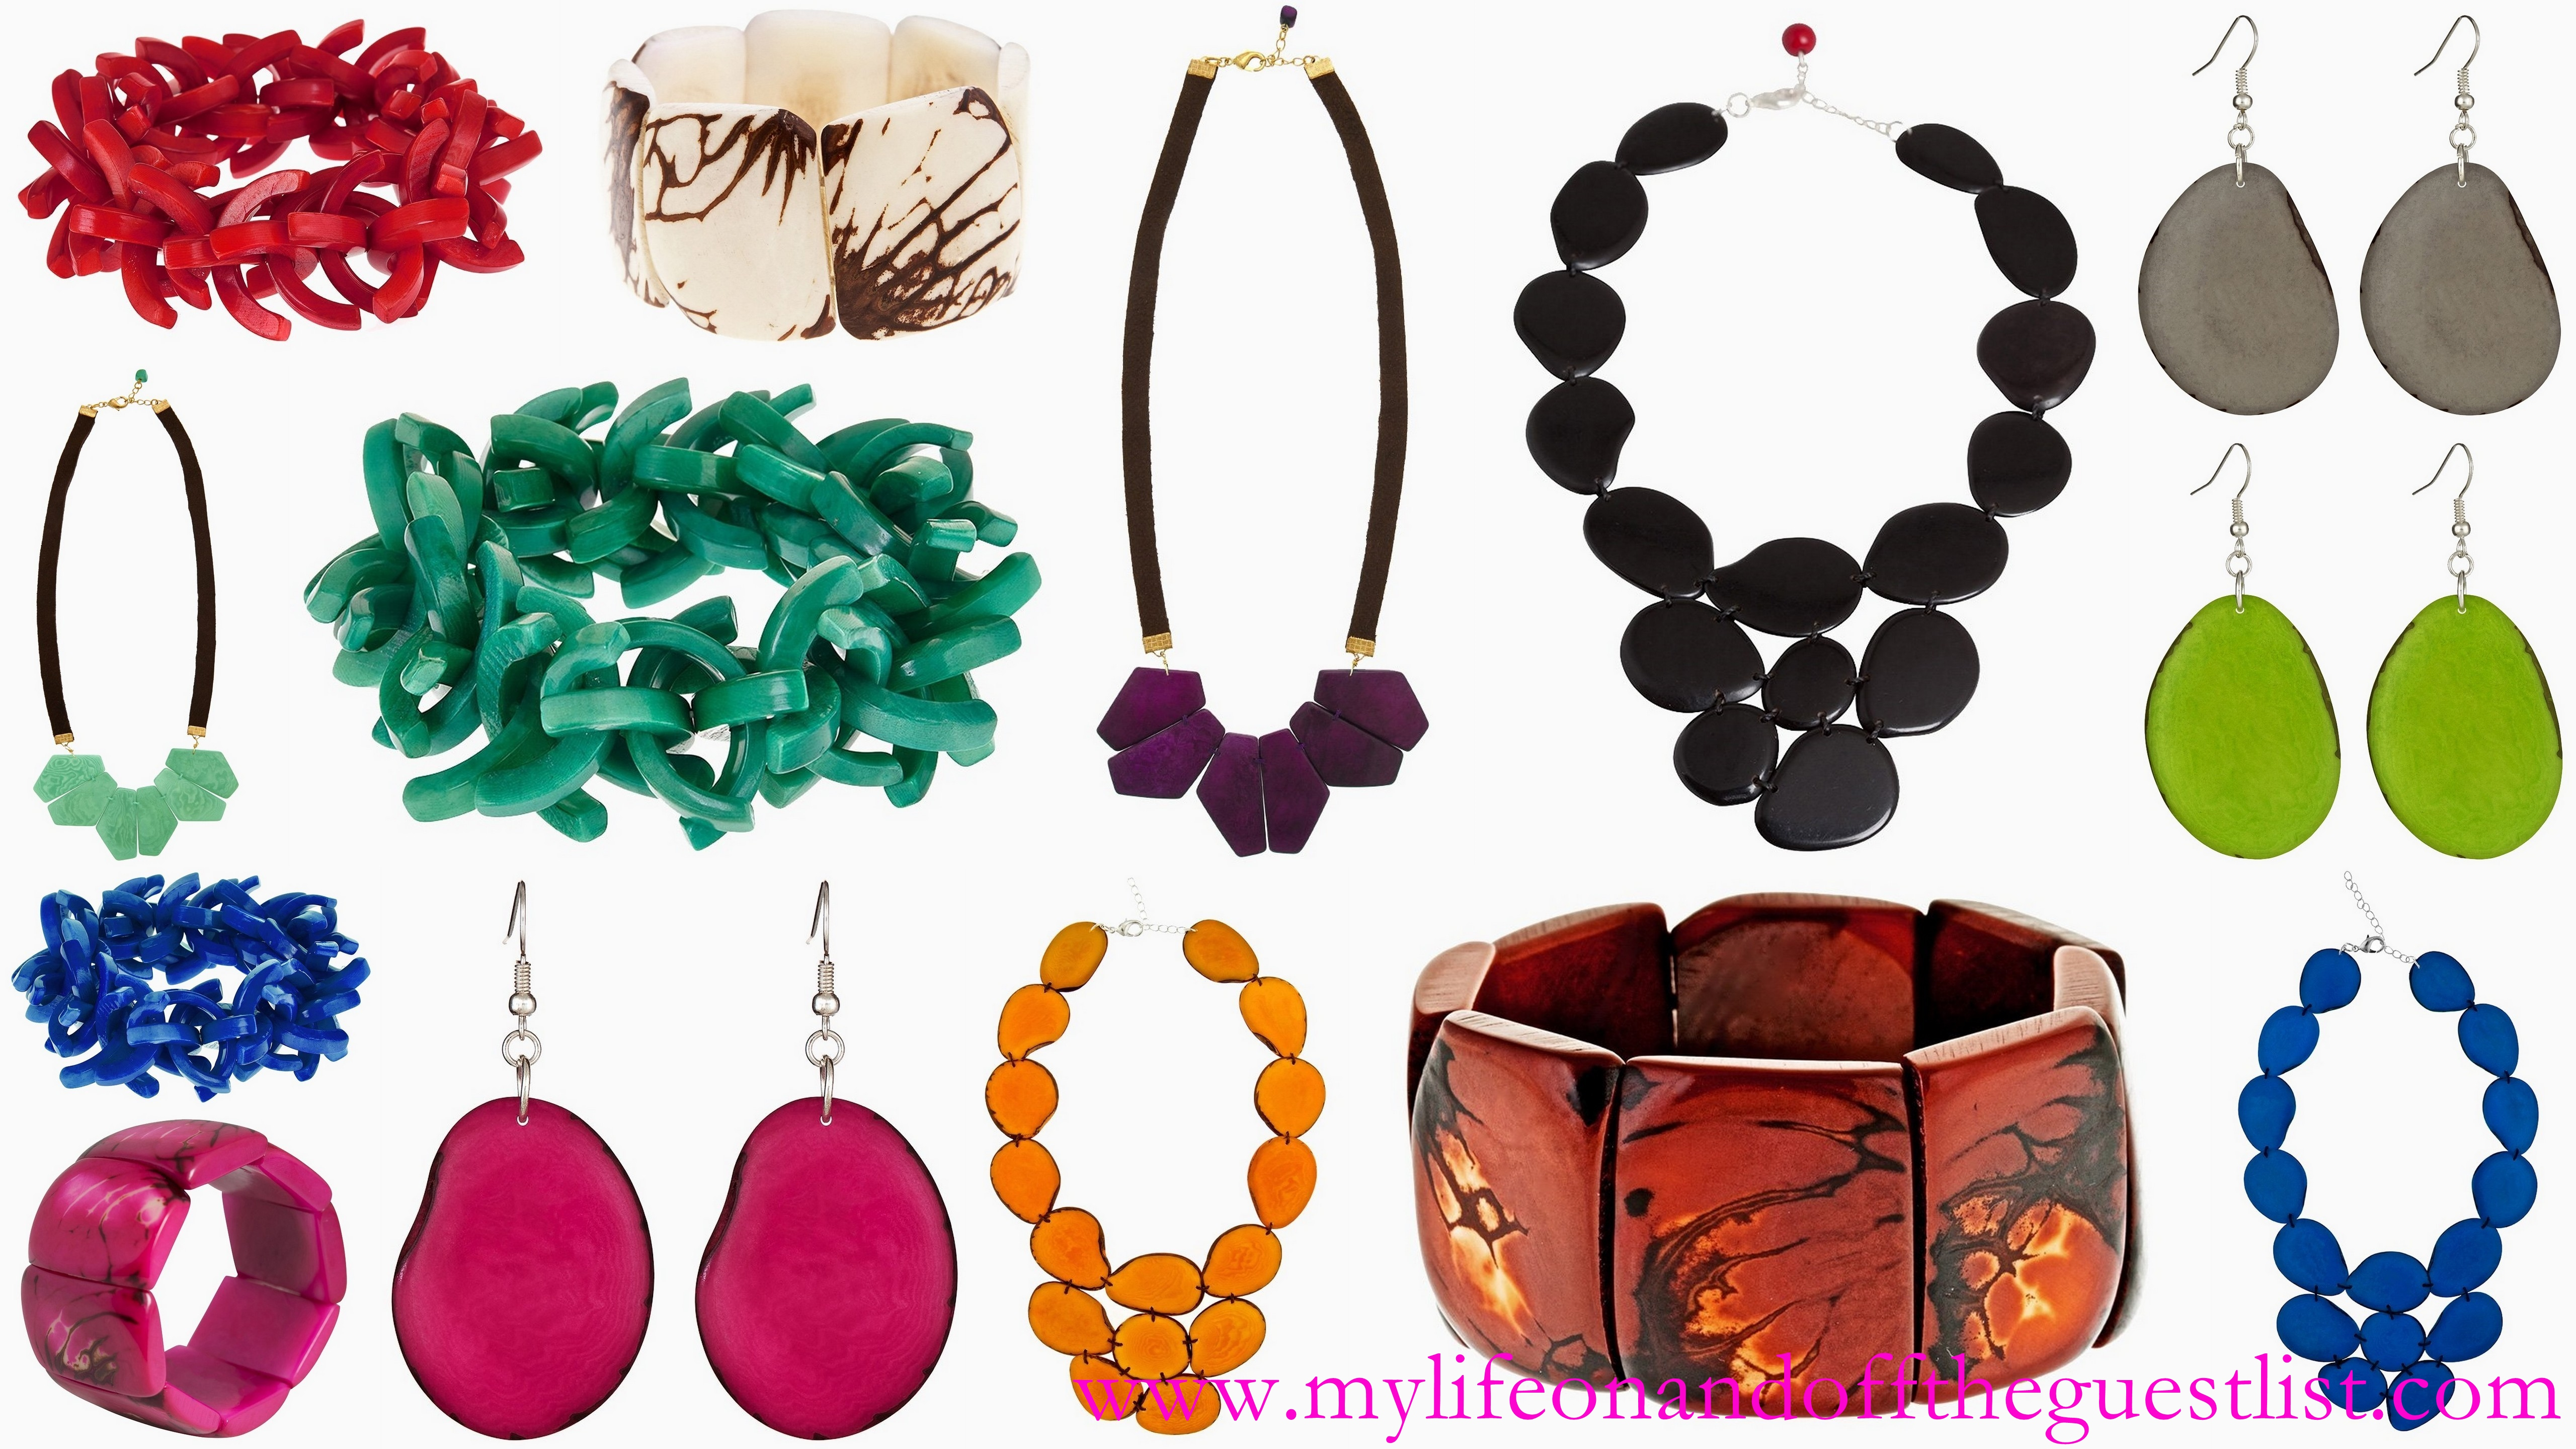 beautiful jewelry: bracelets, necklaces and earrings